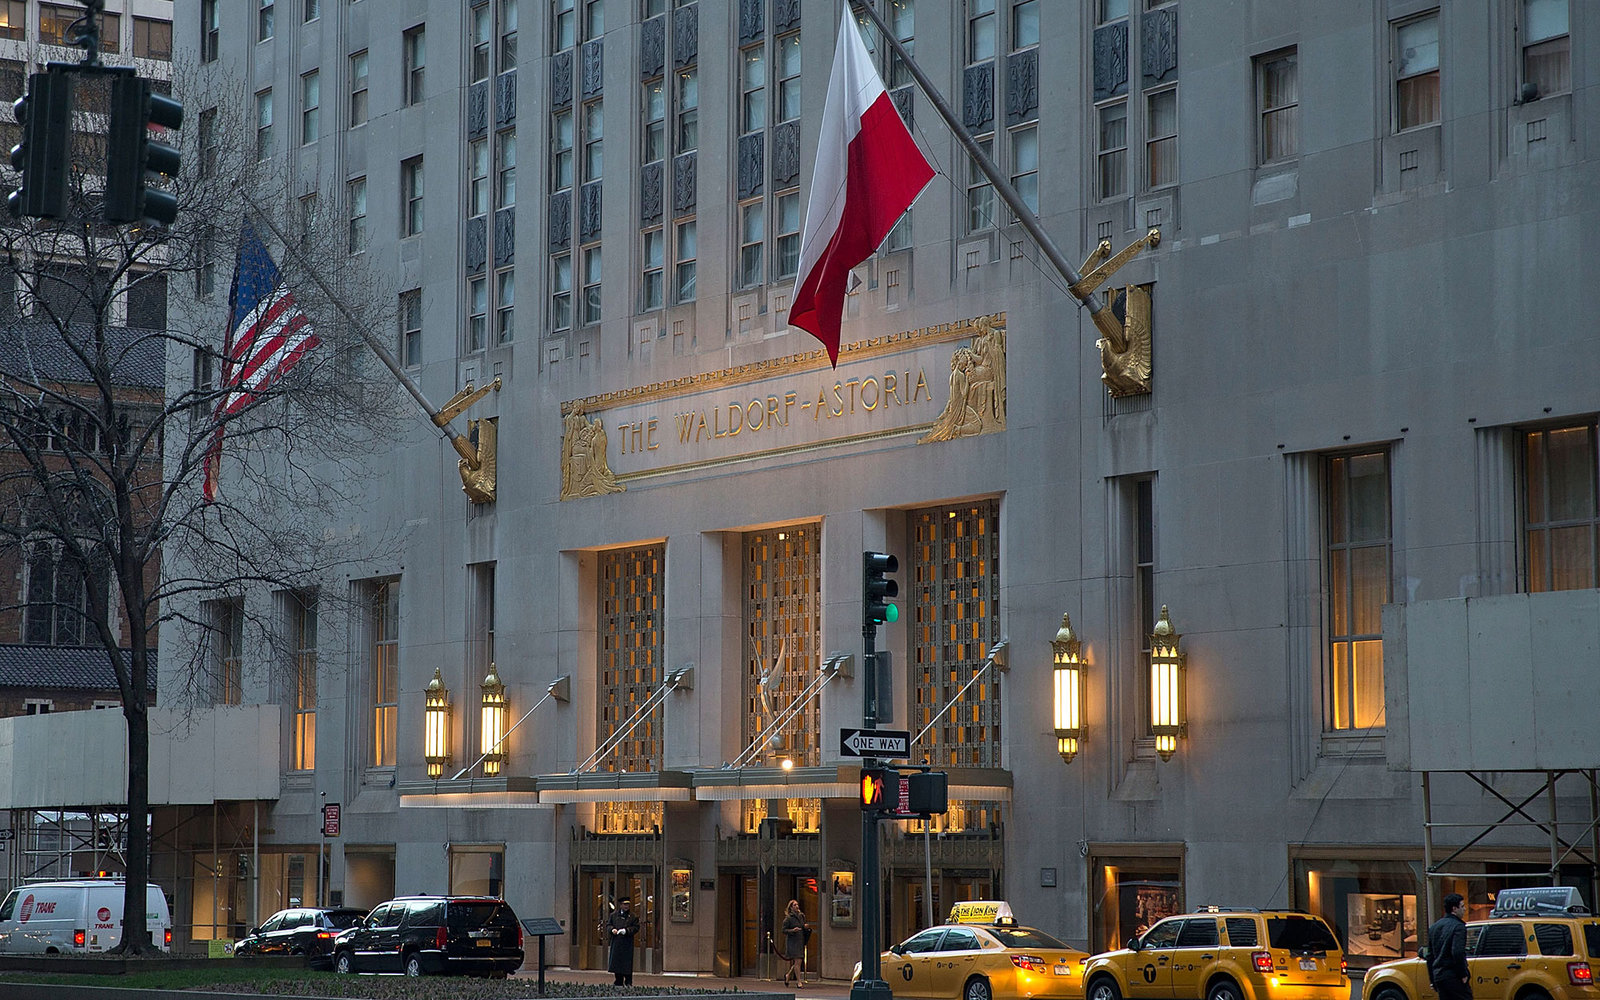 NEW YORK, NY - MARCH 27:  A general view of the exterior facade of the Waldorf-Astoria Hotel on March 27, 2013 in New York City.  (Photo by Ben Hider/Getty Images)